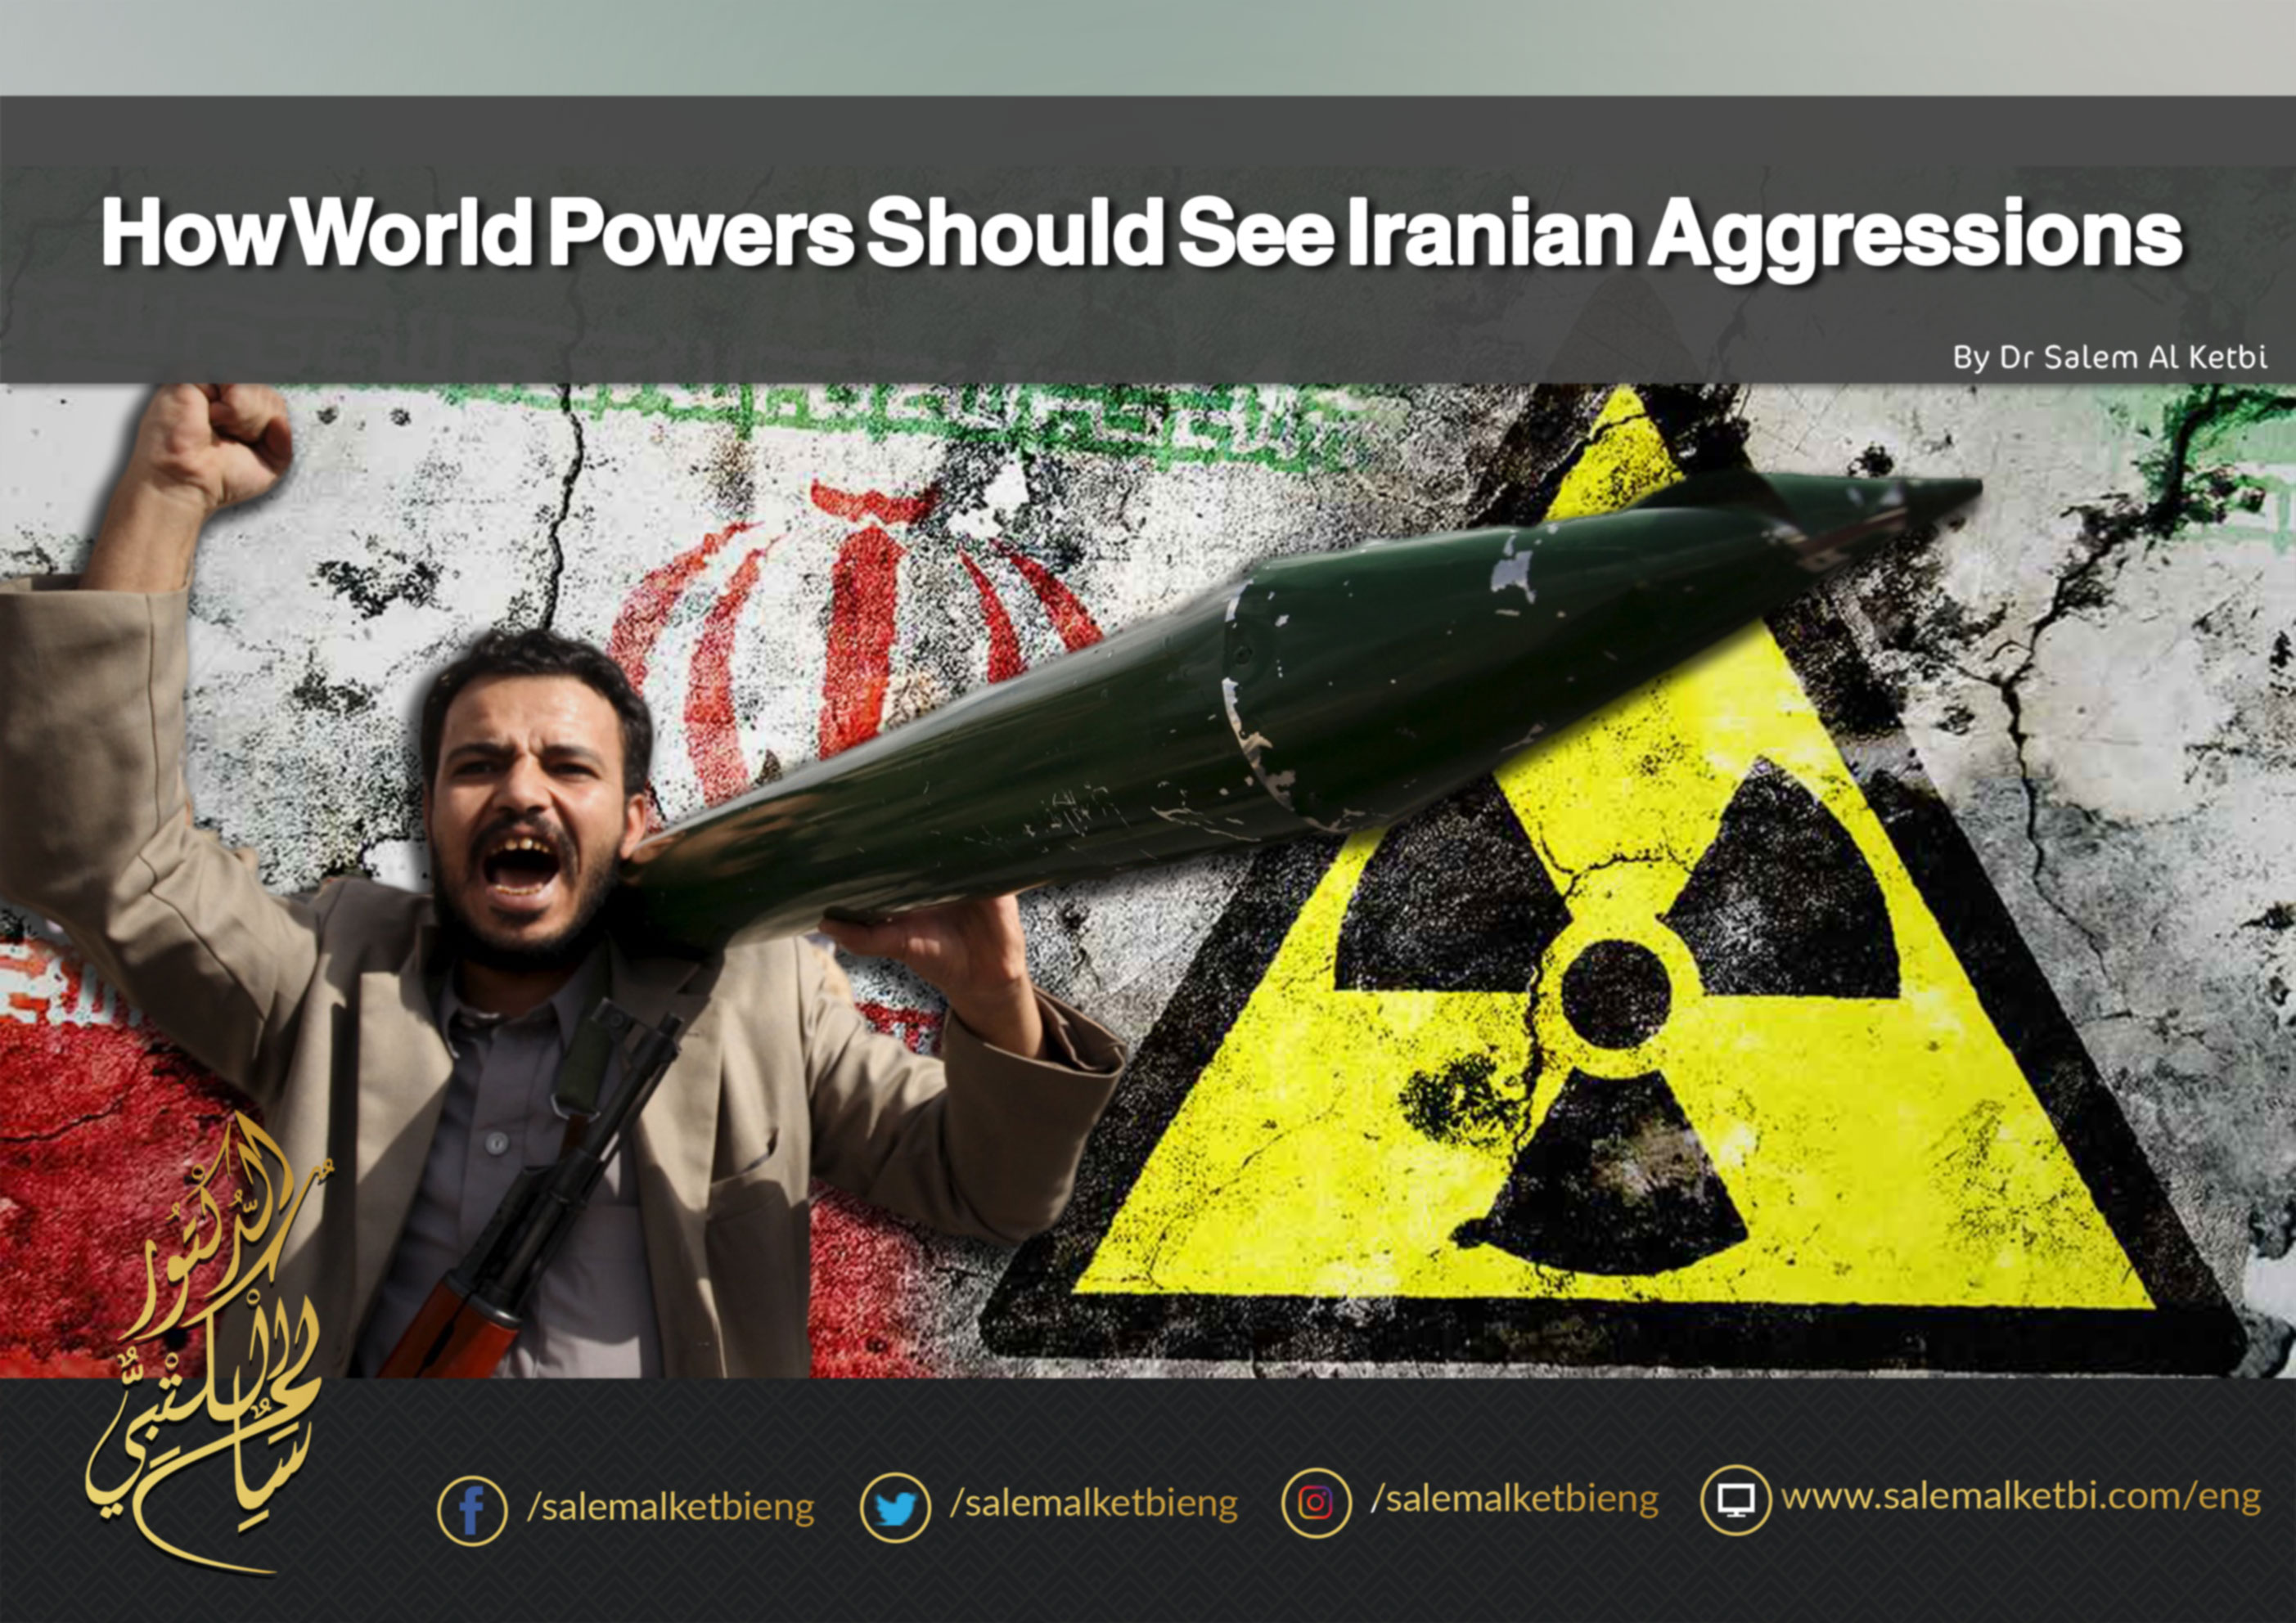 How World Powers Should See Iranian Aggressions